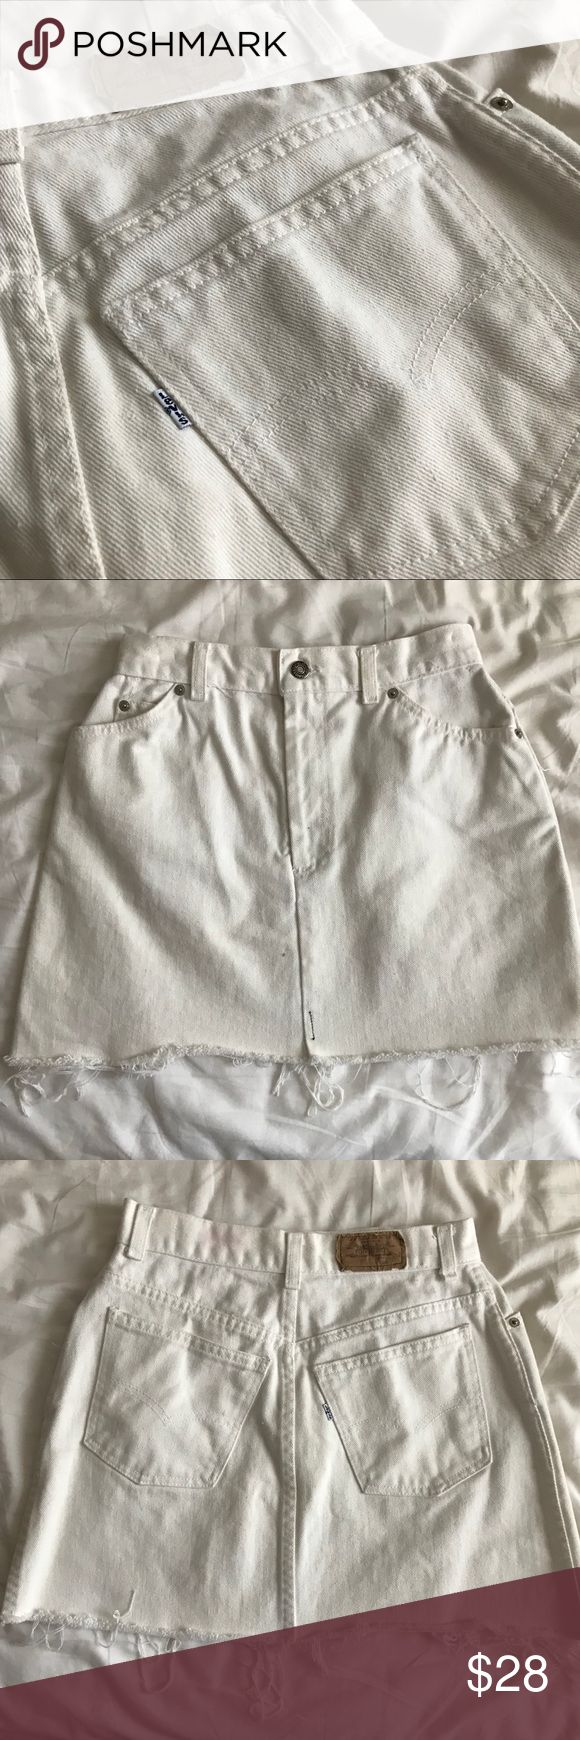 "Vintage Levi's White Denim Mini Skirt iconic Classic A-line fit, vintage white denim Levi's skirt with frayed hem. 2 minor stains pictured that could probably be removed with bleach or shout  Color:ivory/white denim Size:26"" around (no inside tags"" Length: 15"" Levi's Skirts Mini"